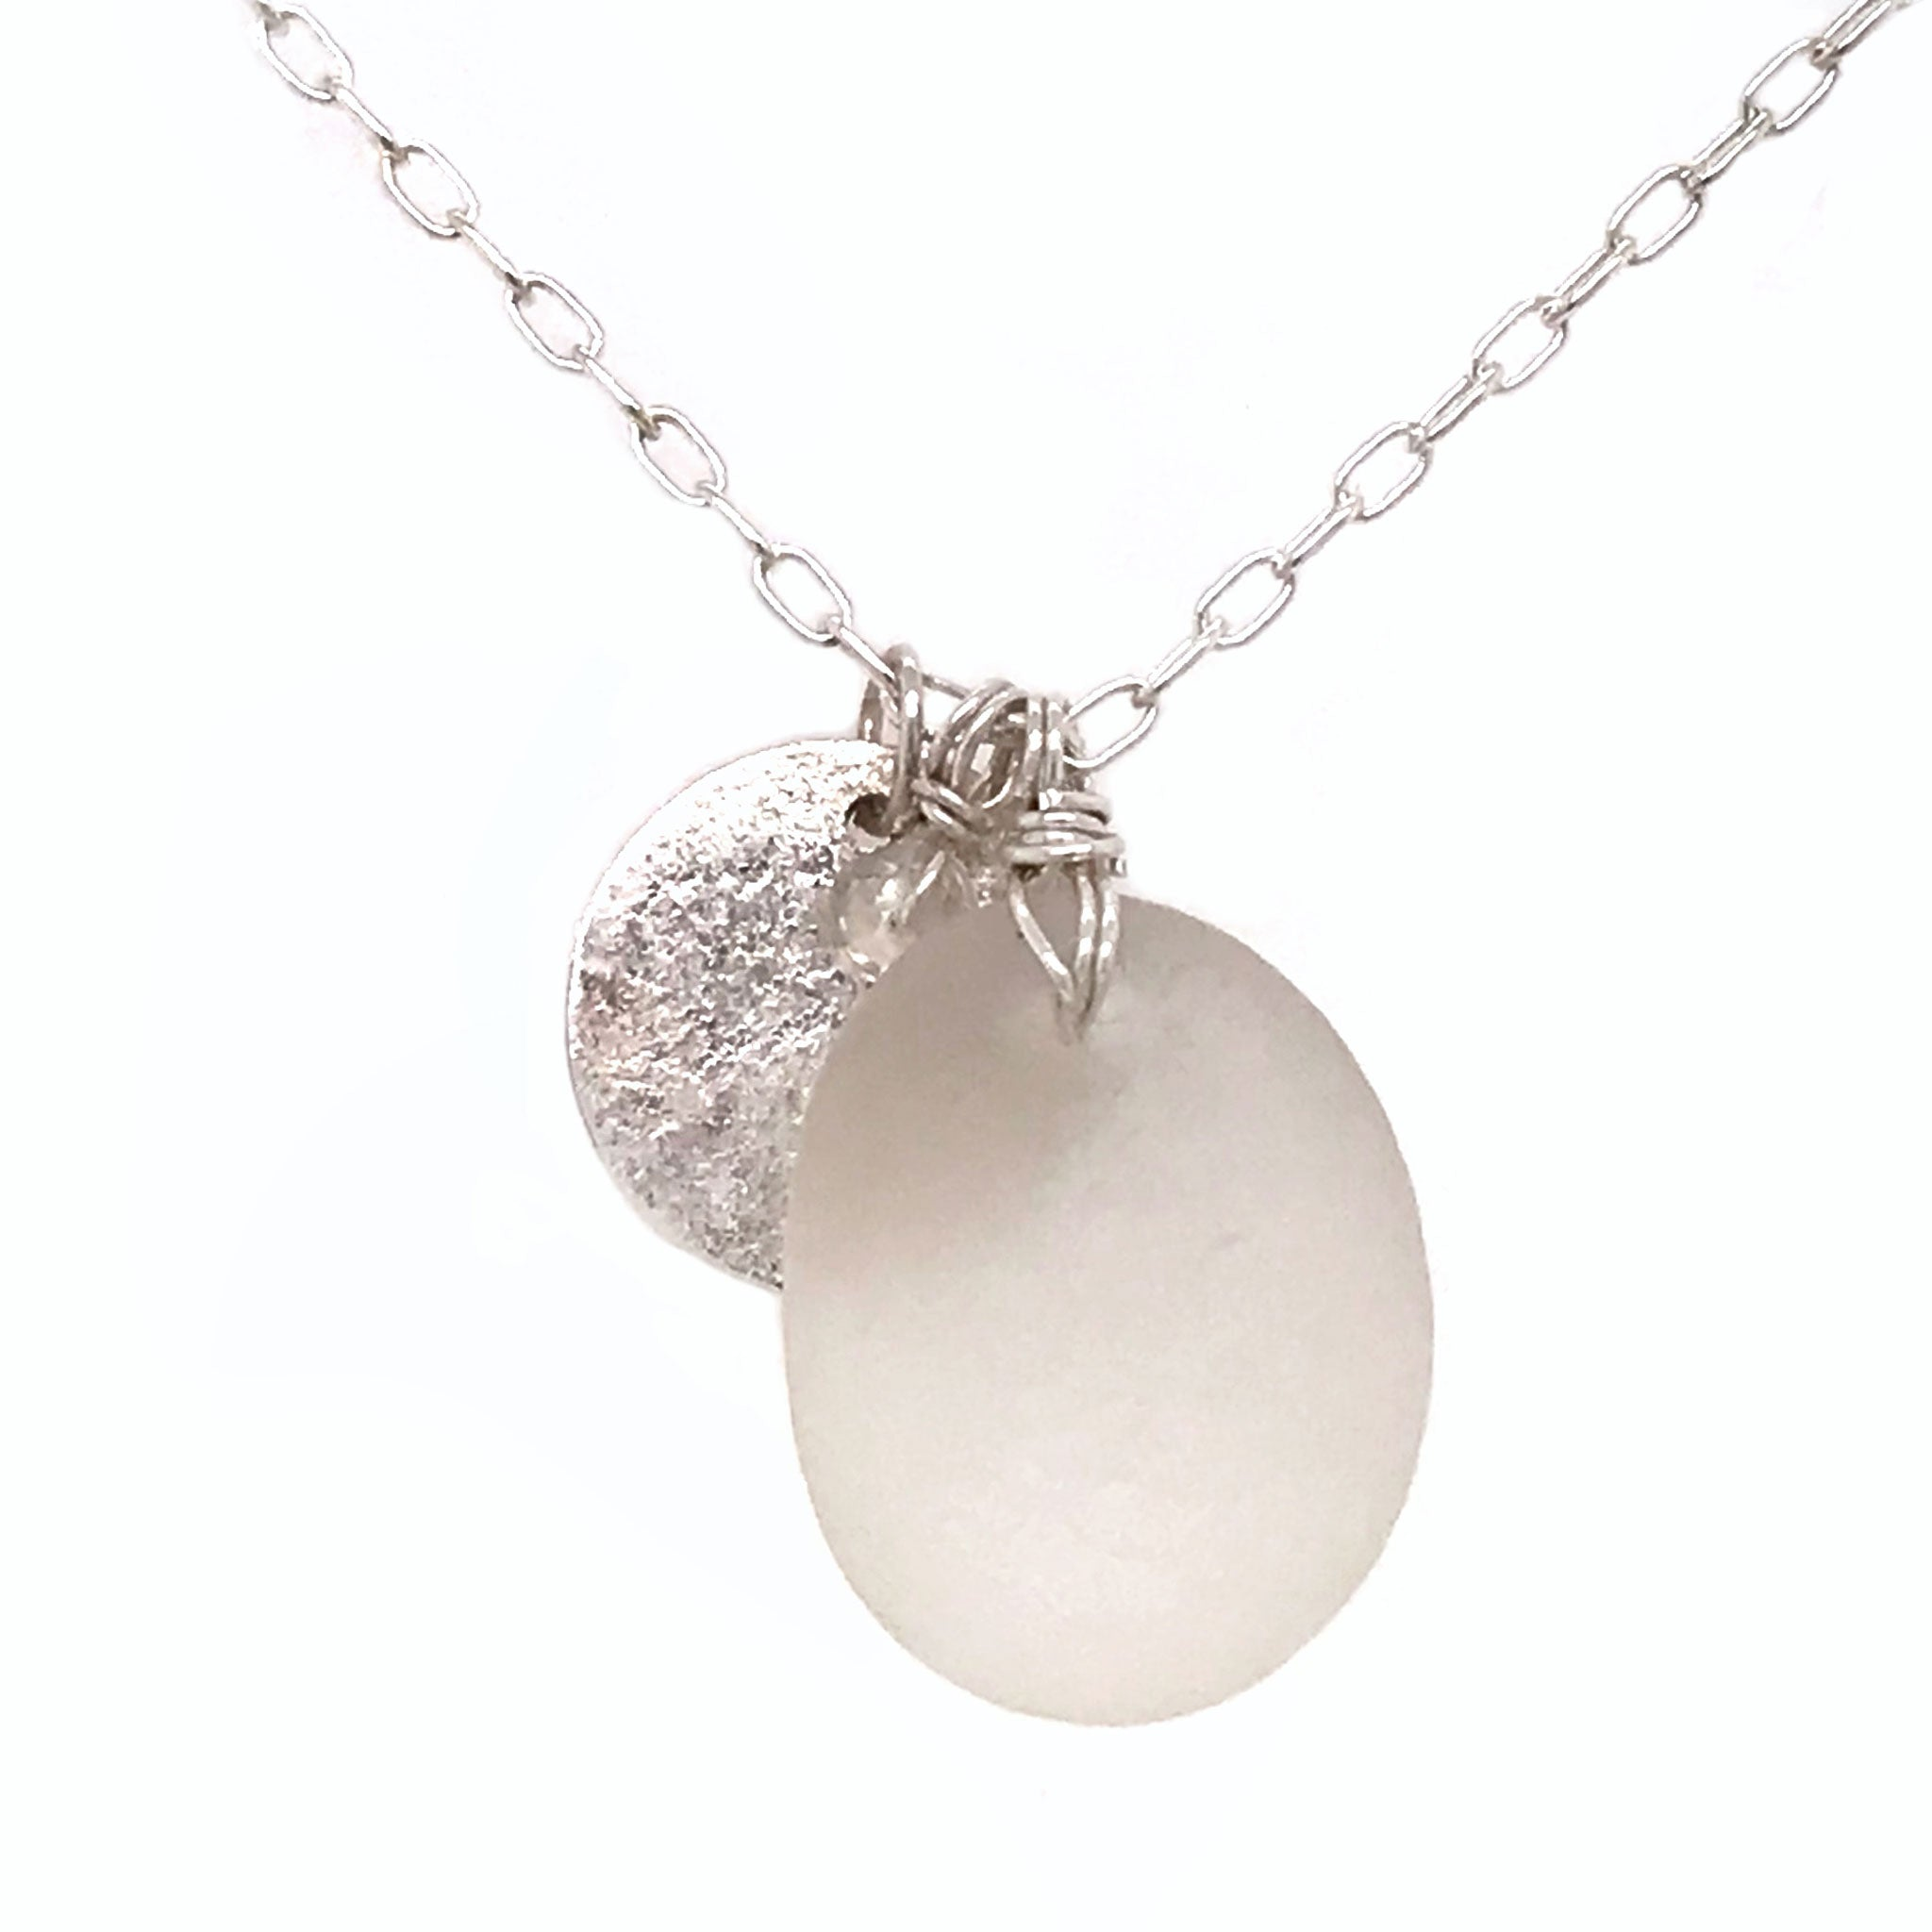 clear seaglass pendant on silver necklace with silver disc charm kriket broadhurst jewellery